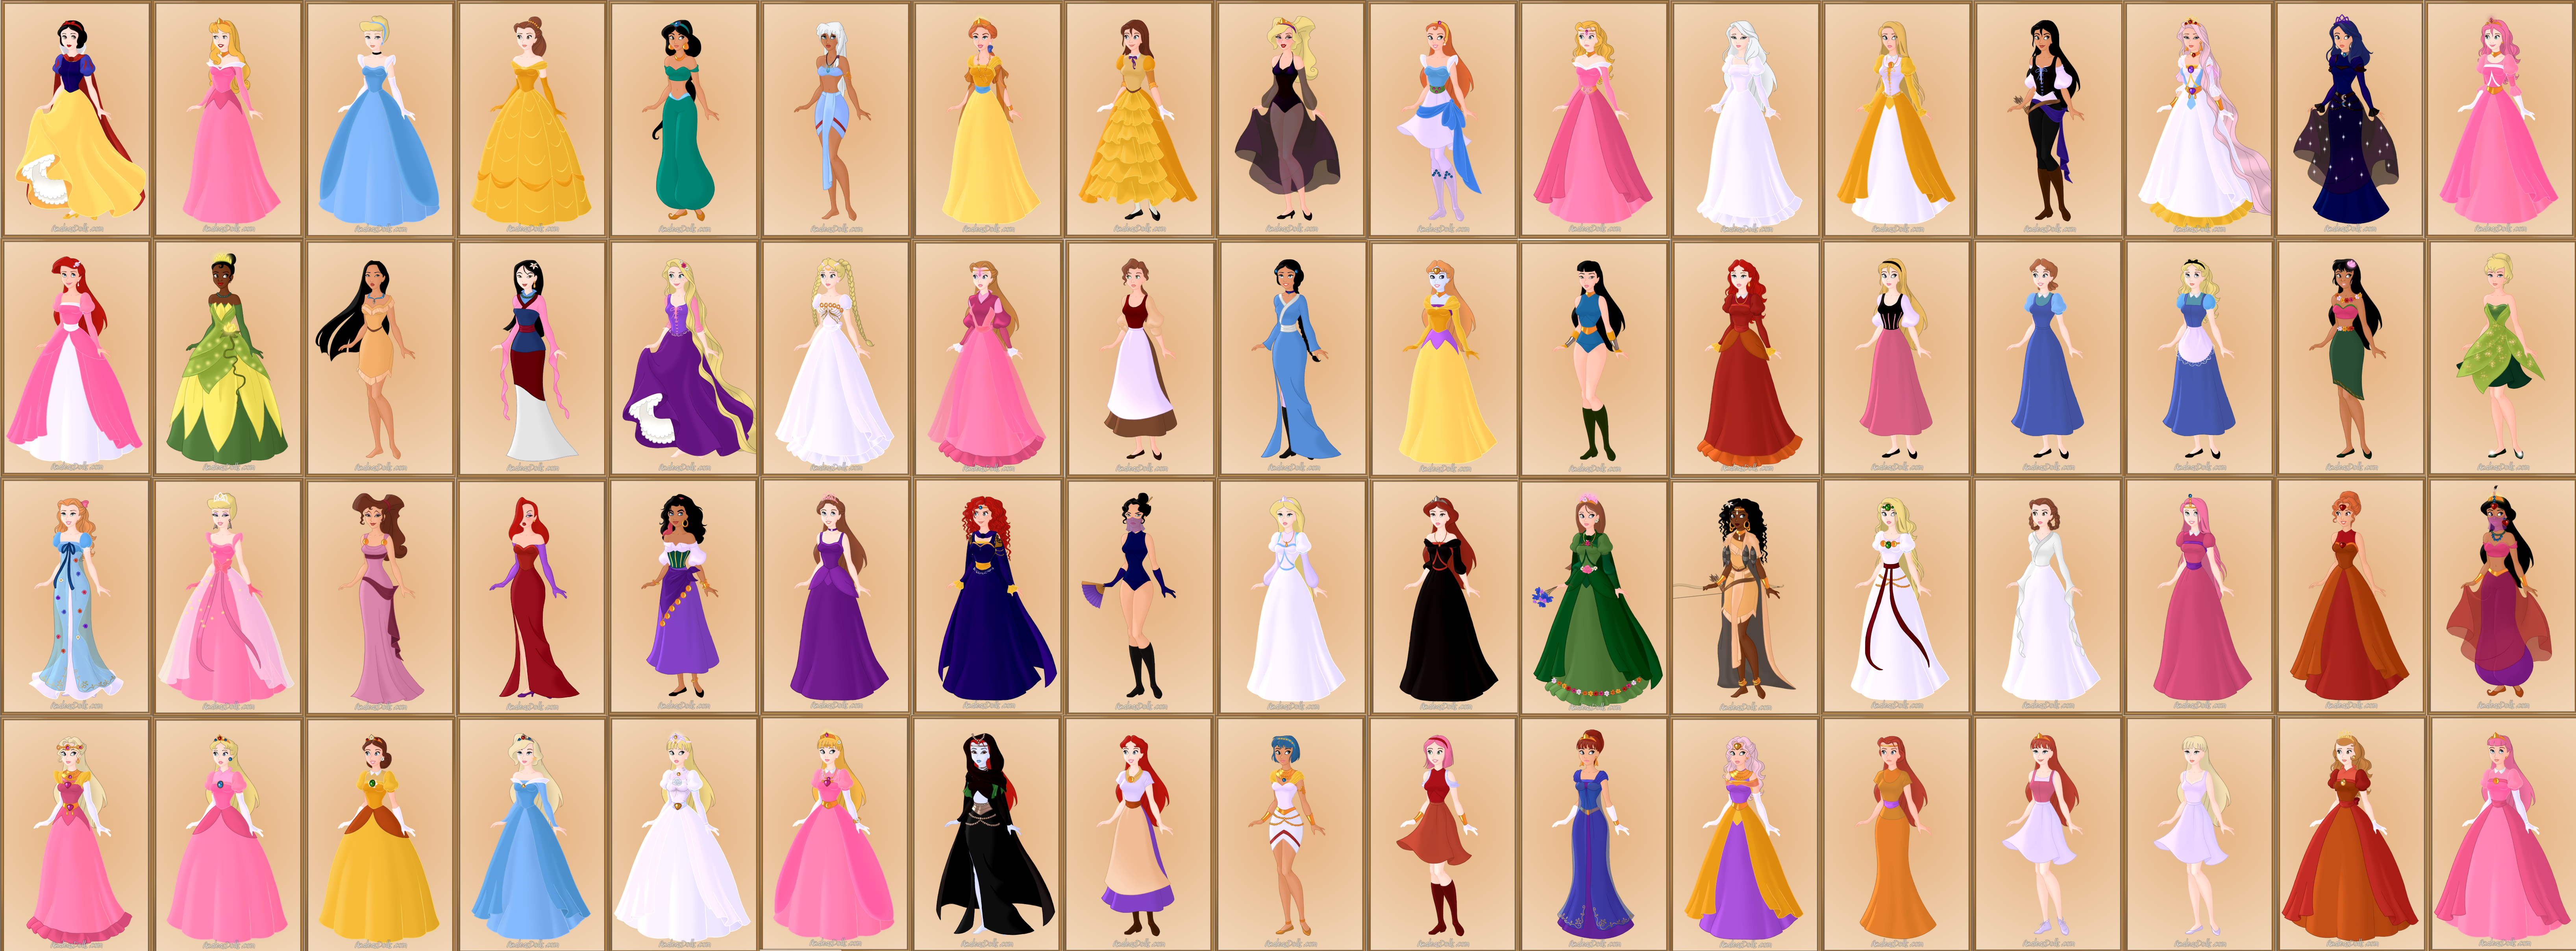 Lady Lair Disney Princess Non Princess And Video Game By